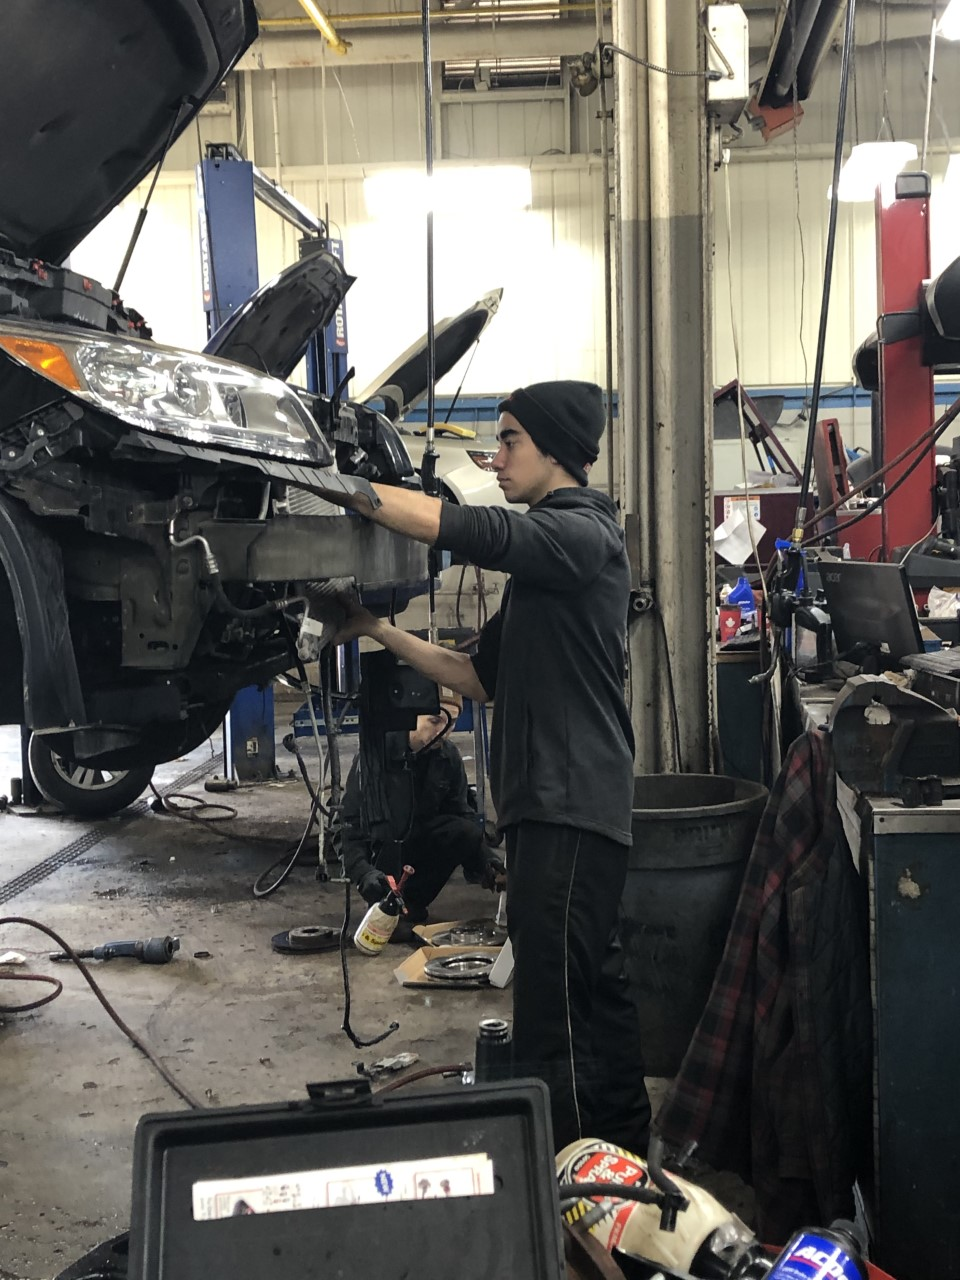 male student working on a car in an auto shop